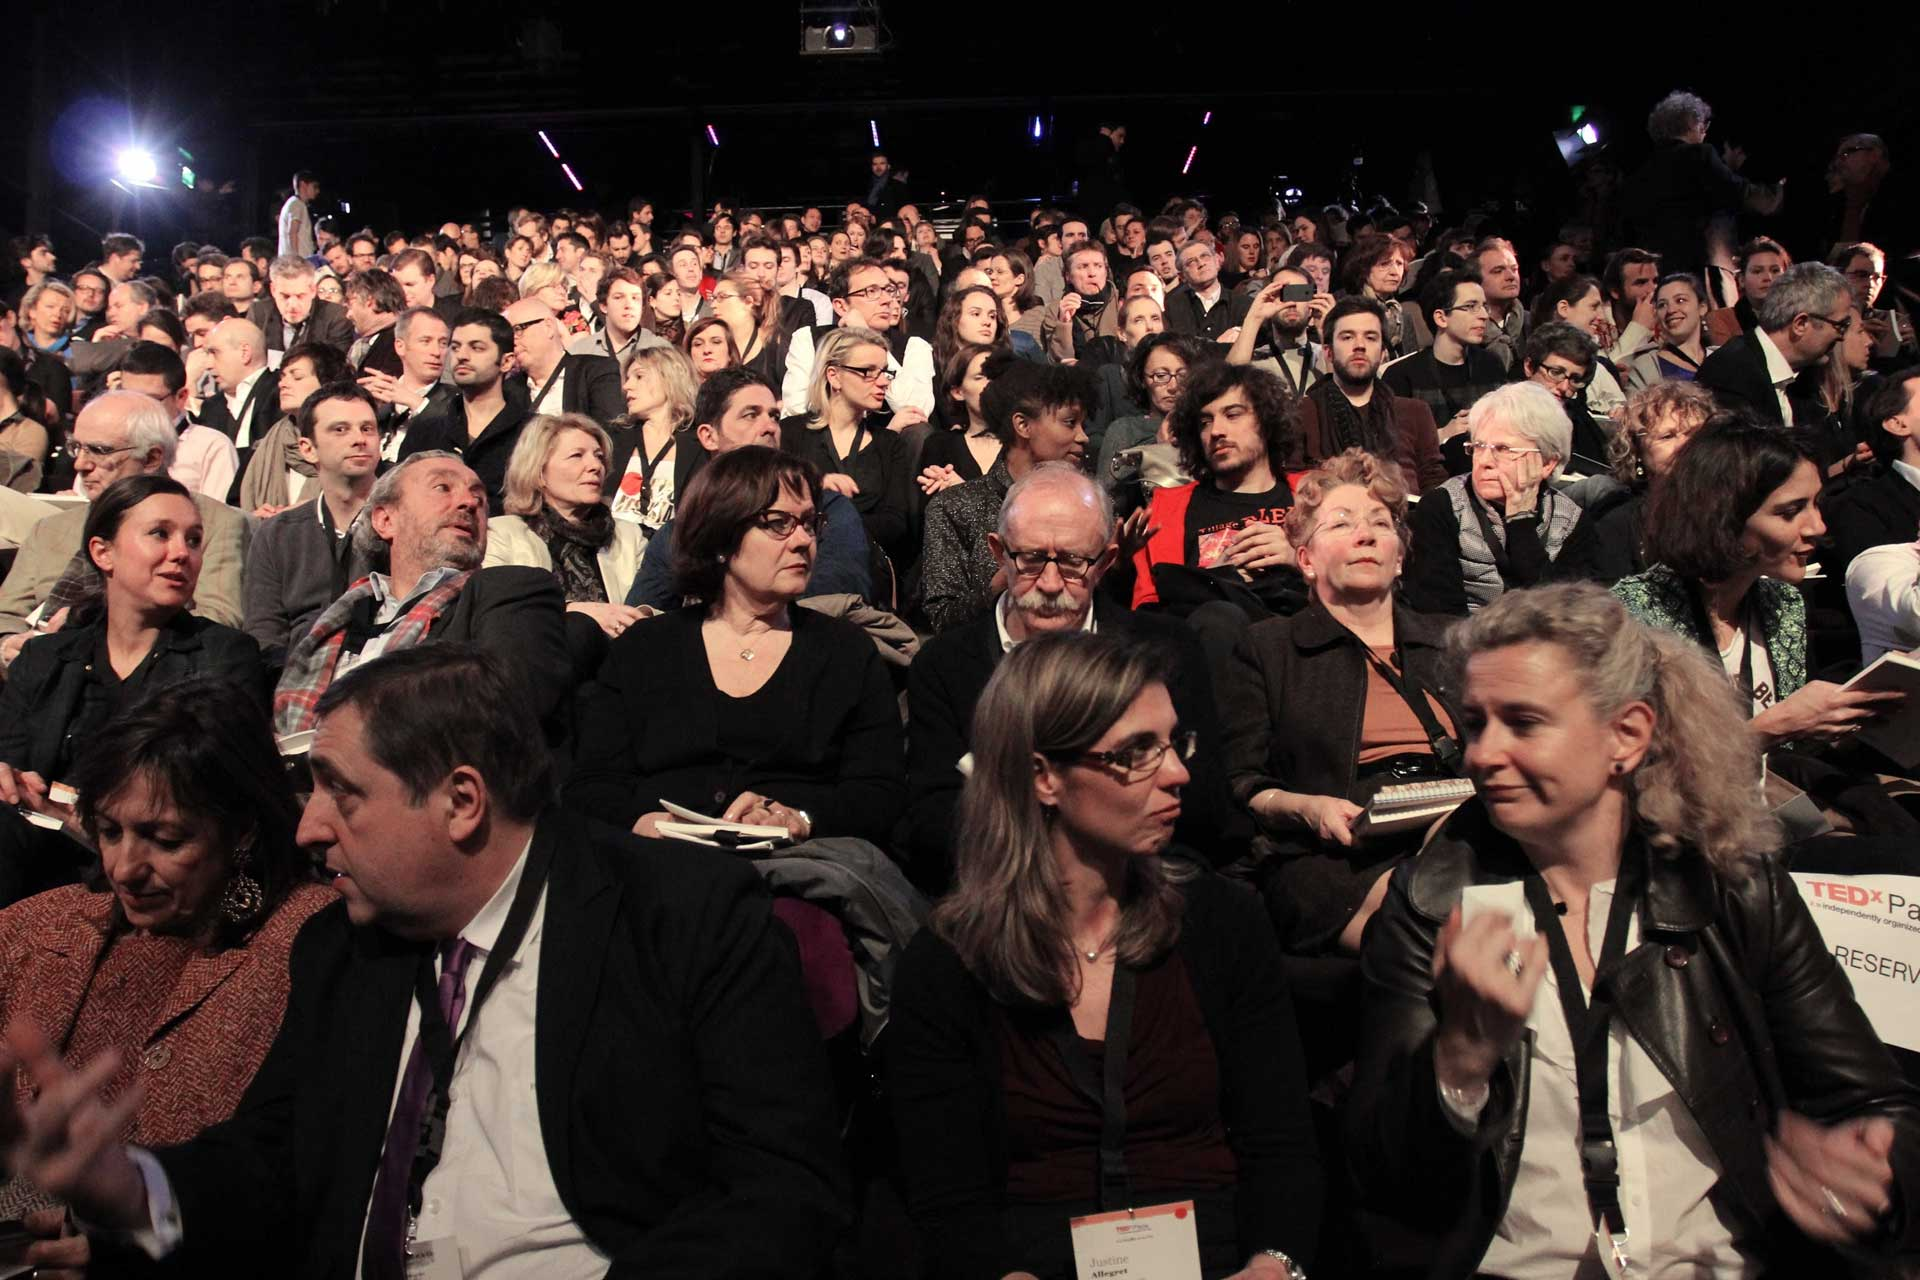 conference-TEDxParis-2013.jpg